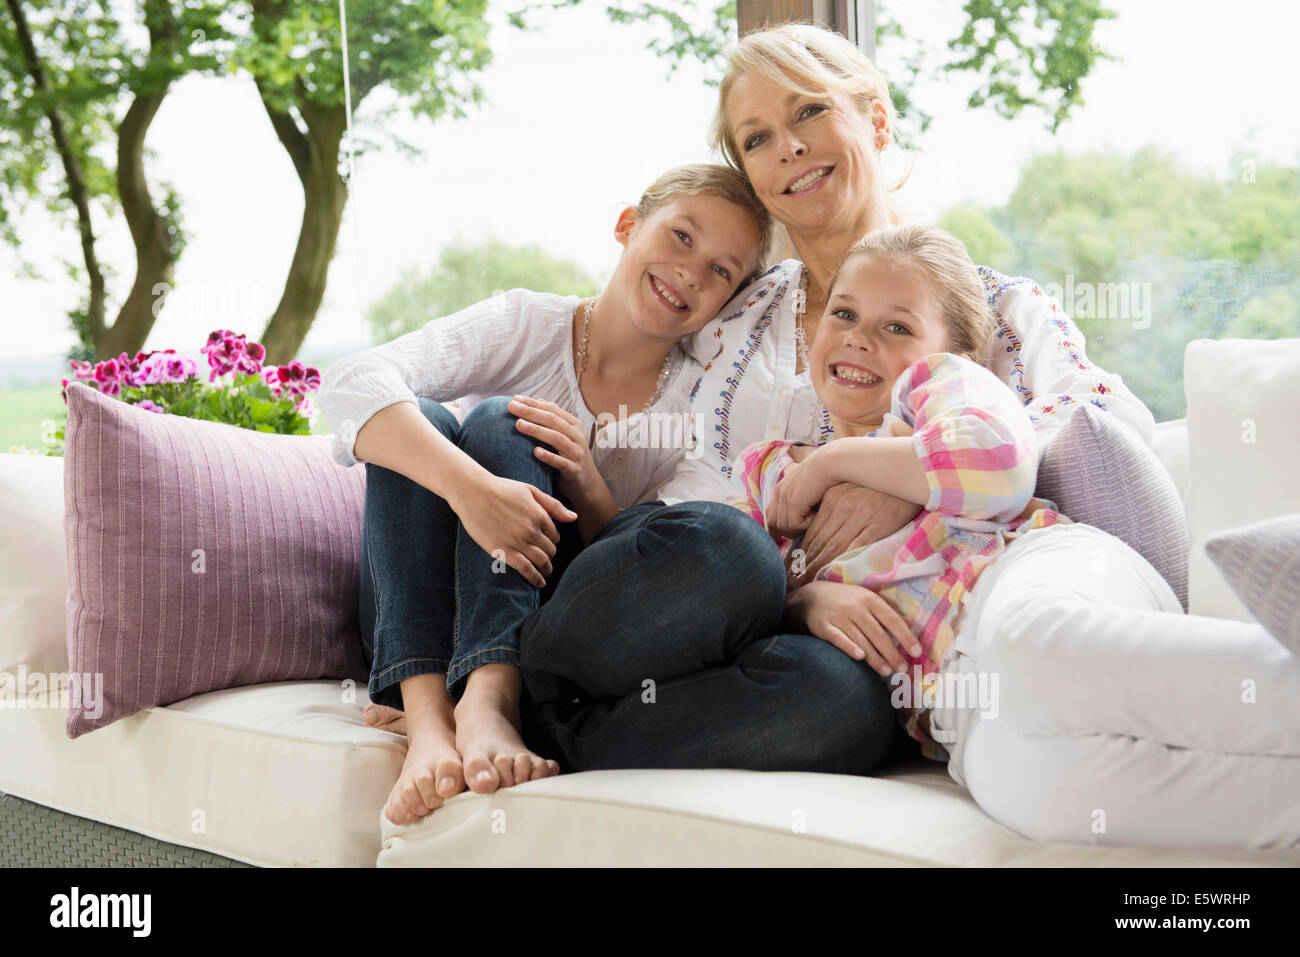 Mother and daughters sitting on sofa - Stock Image